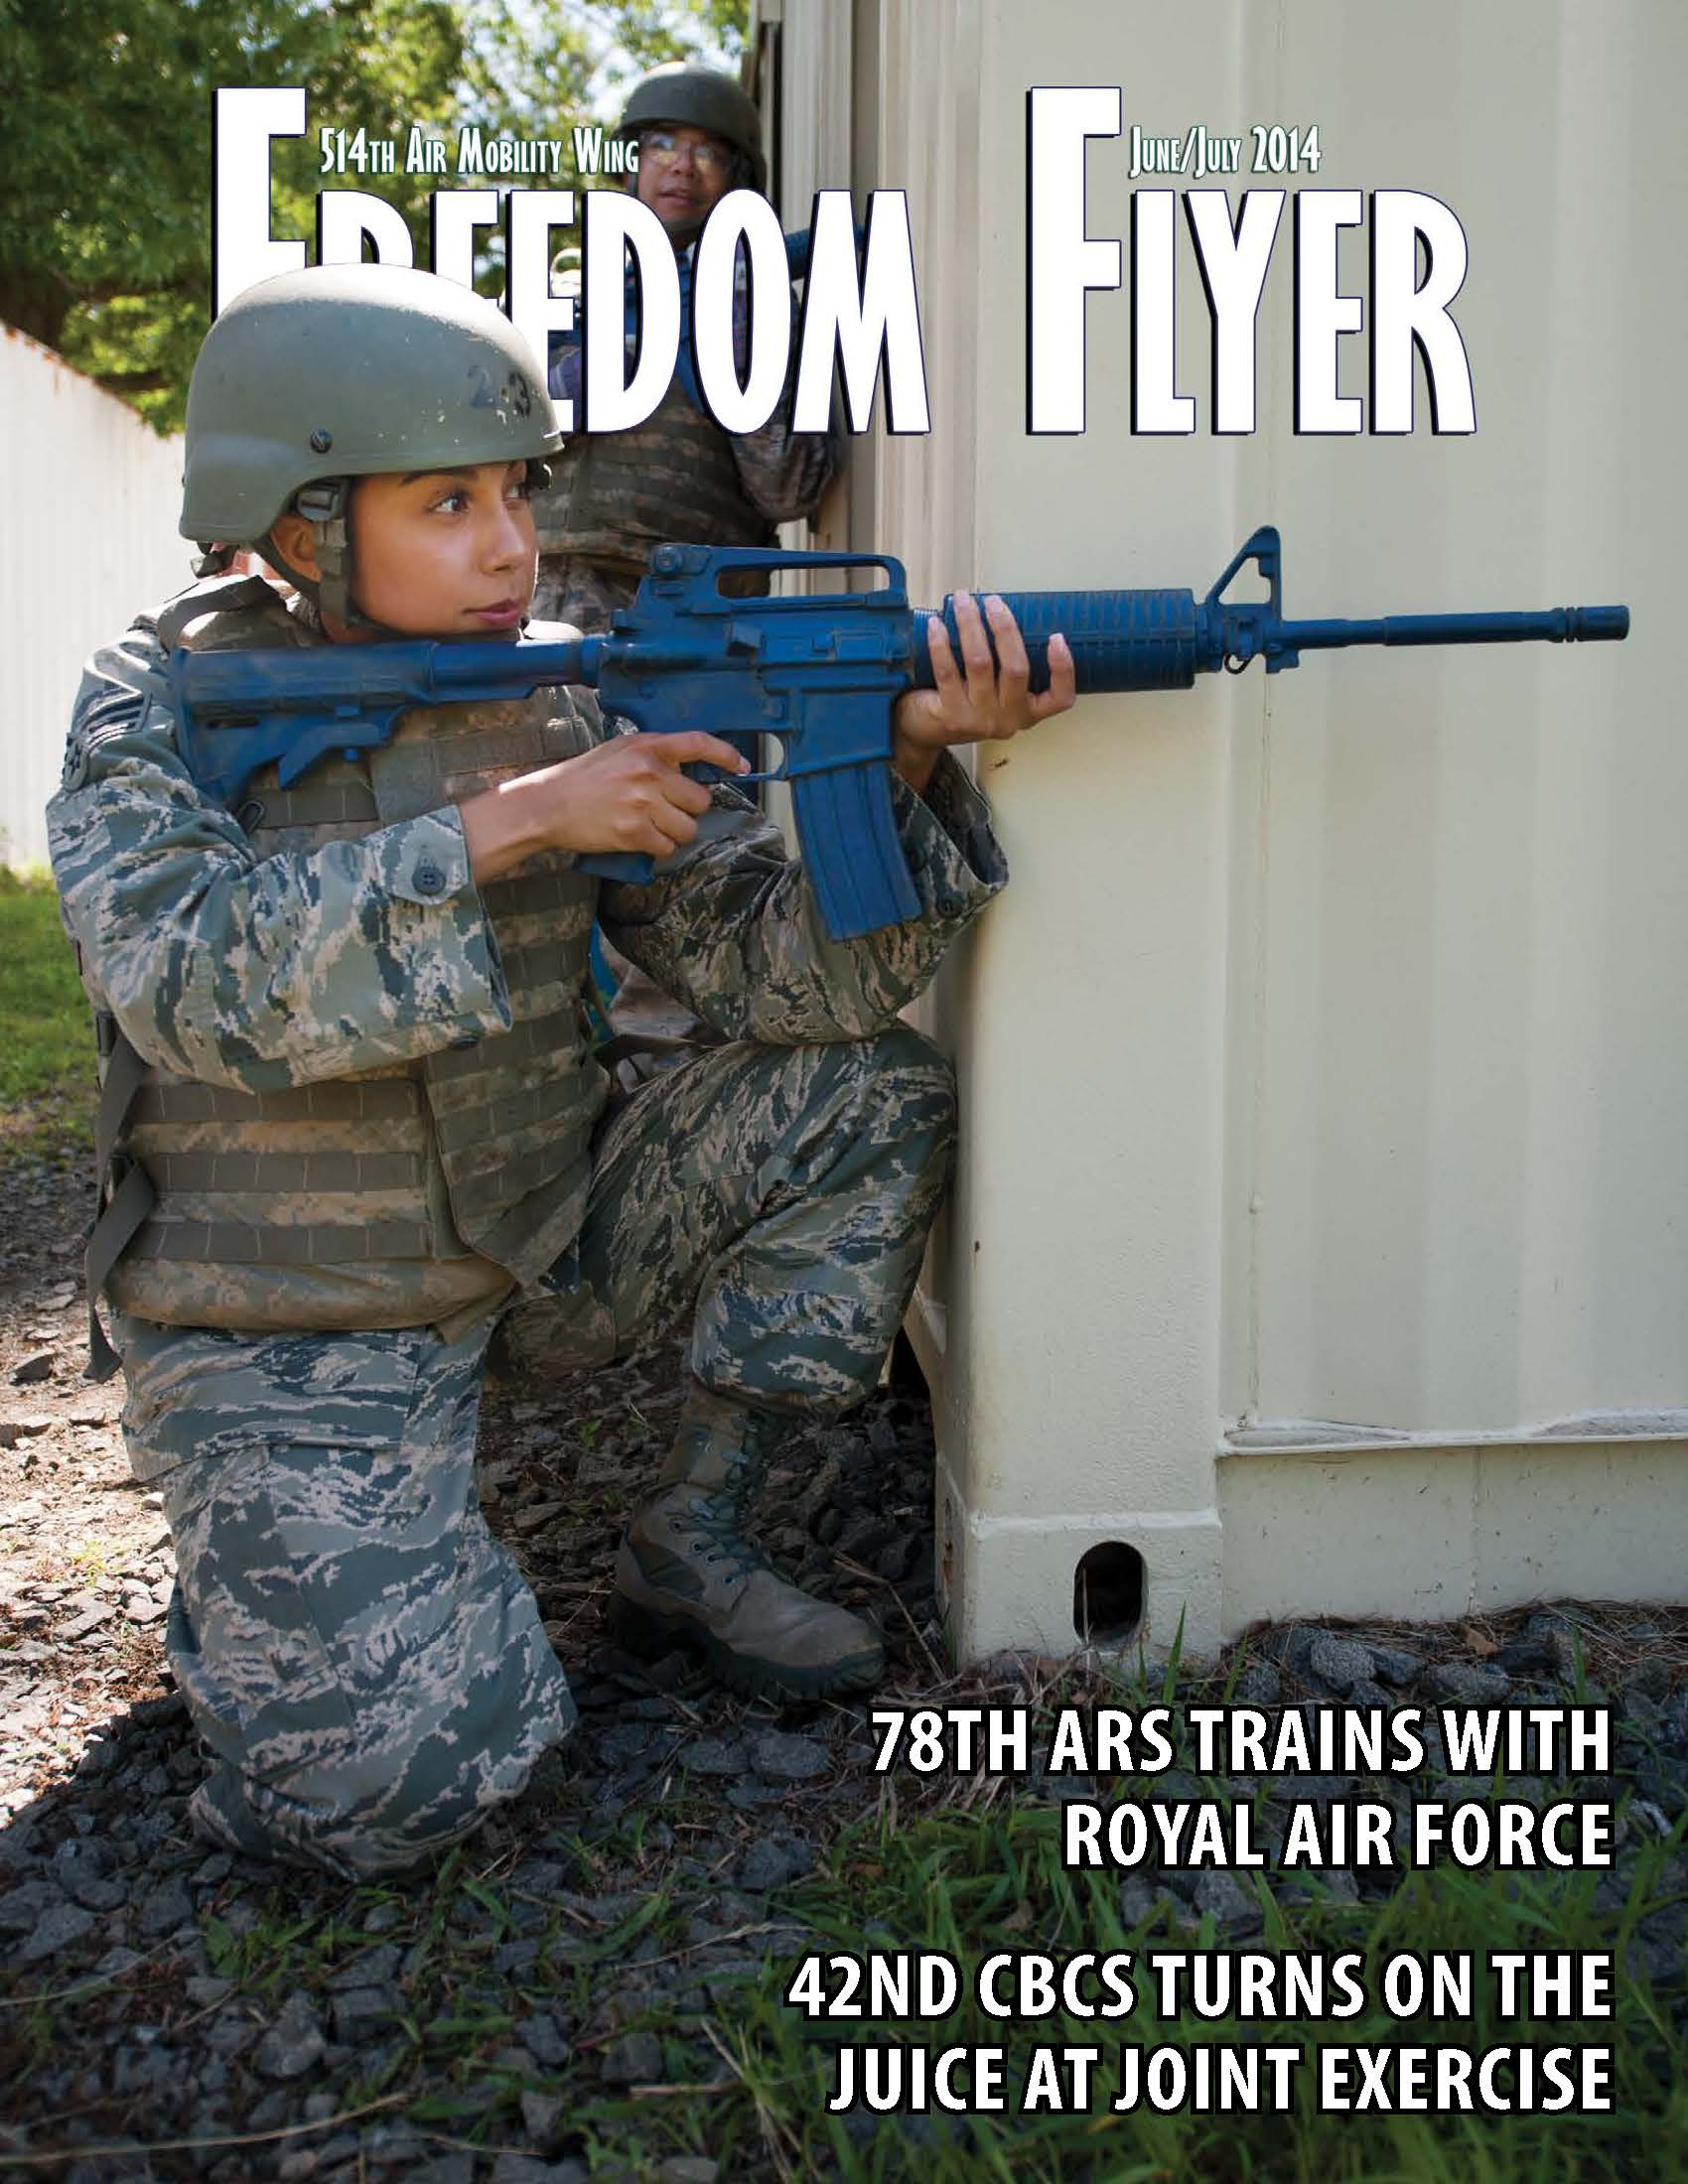 Freedom Flyer - June-July 2014